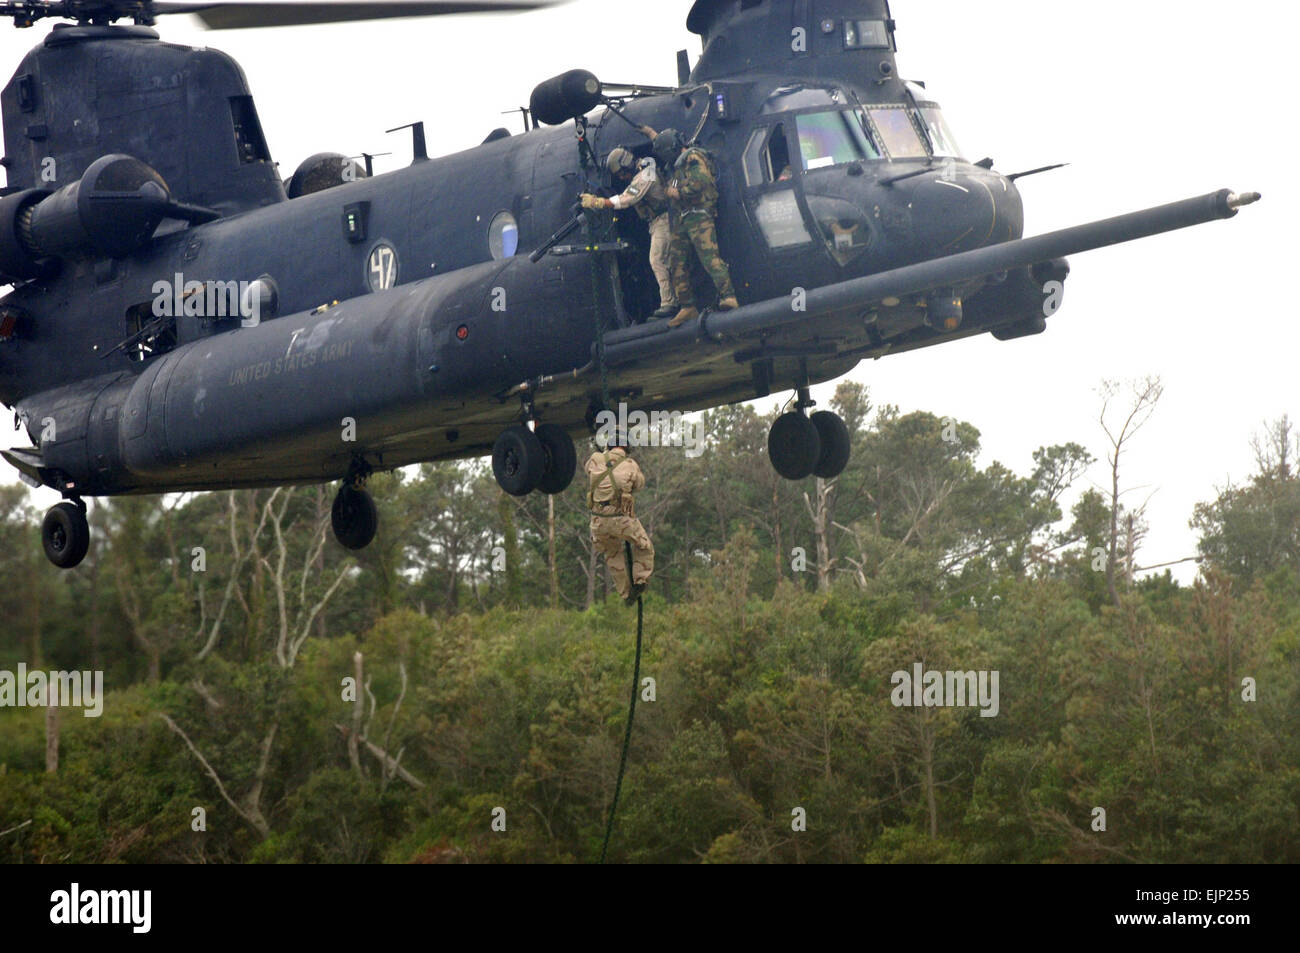 A U.S. Air Force Airman fast ropes from an MH-47 Chinook helicopter from an MH-47 Chinook helicopter assigned to U.S. Army 160th Special Operations Aviation Regiment on Fort Fisher in Kure Beach, N.C., Sept. 19, 2007. Airmen and Soldiers from Hurlburt Field, Fla., and Fort Campbell, Ky., participated in the two-week long training.  Airman Matthew R. Loken Stock Photo